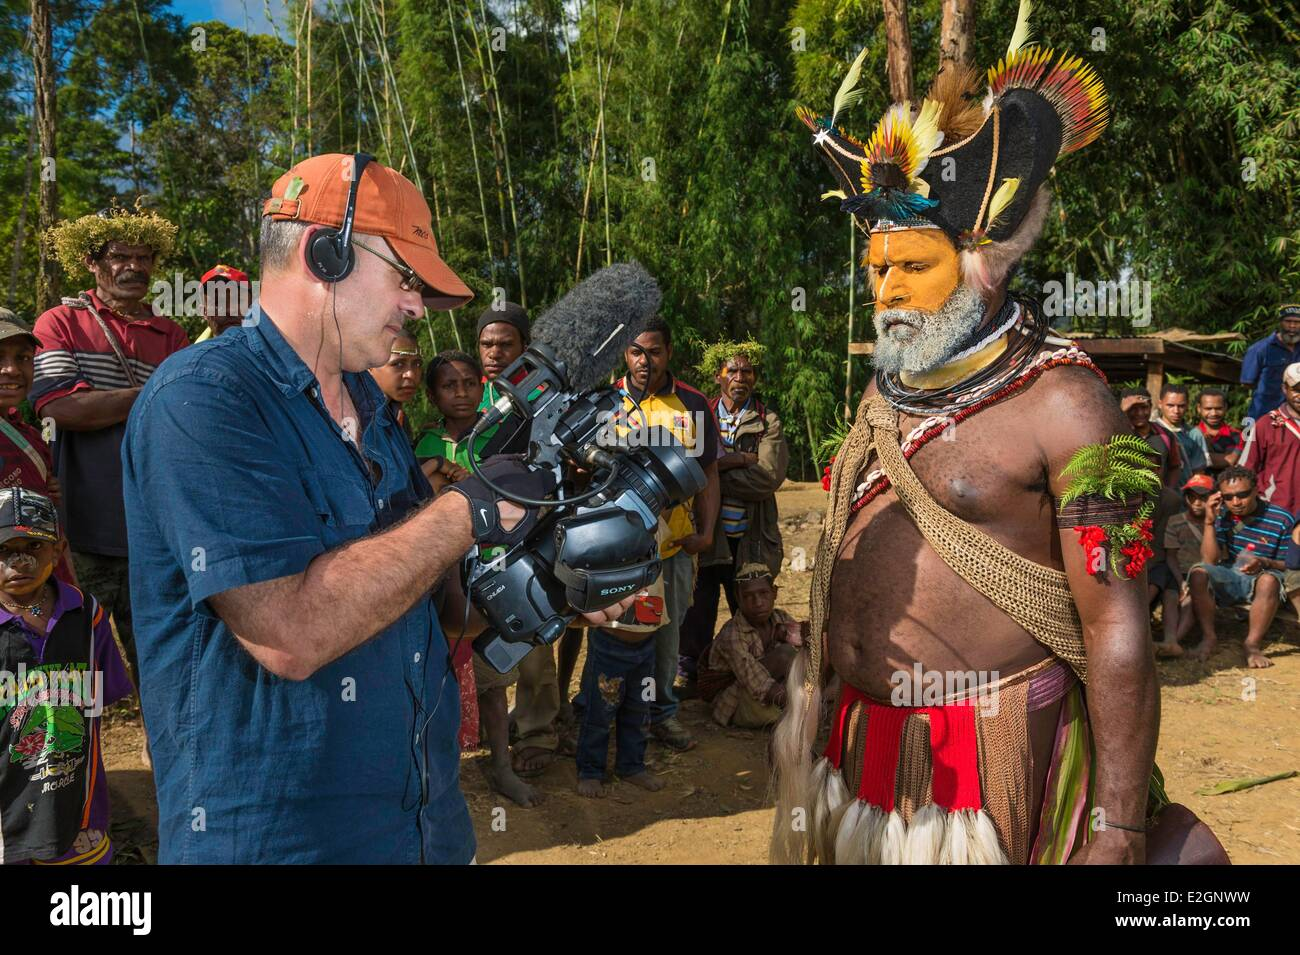 Papua New Guinea Southern Highlands Province Tari region Huli tribe village of Kobe Dumbiali shooting during a filming - Stock Image